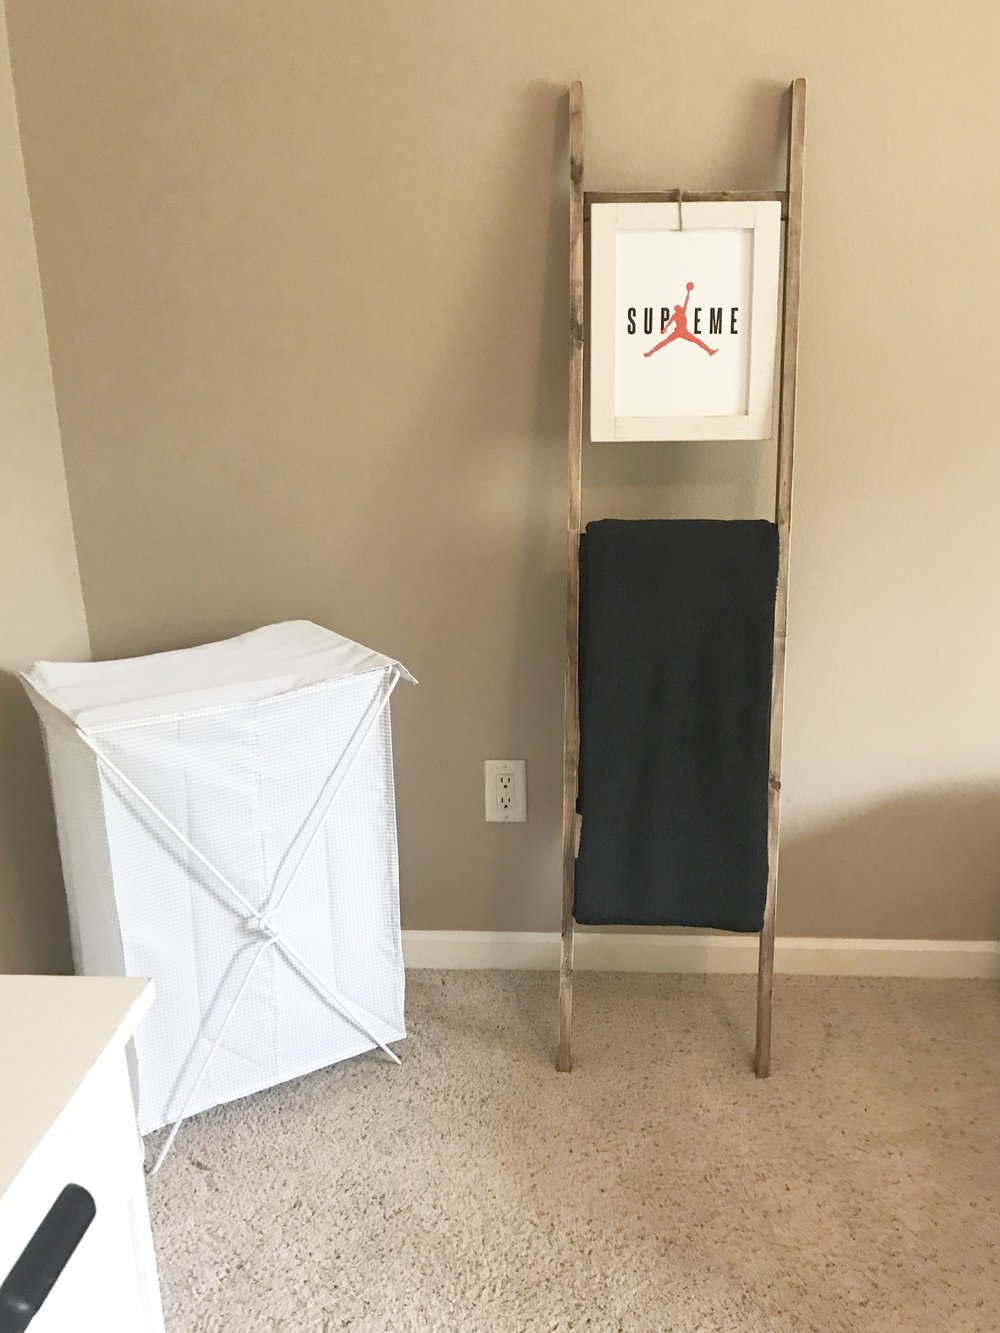 The clothes hamper is from Ikea. I made the ladder shelf.